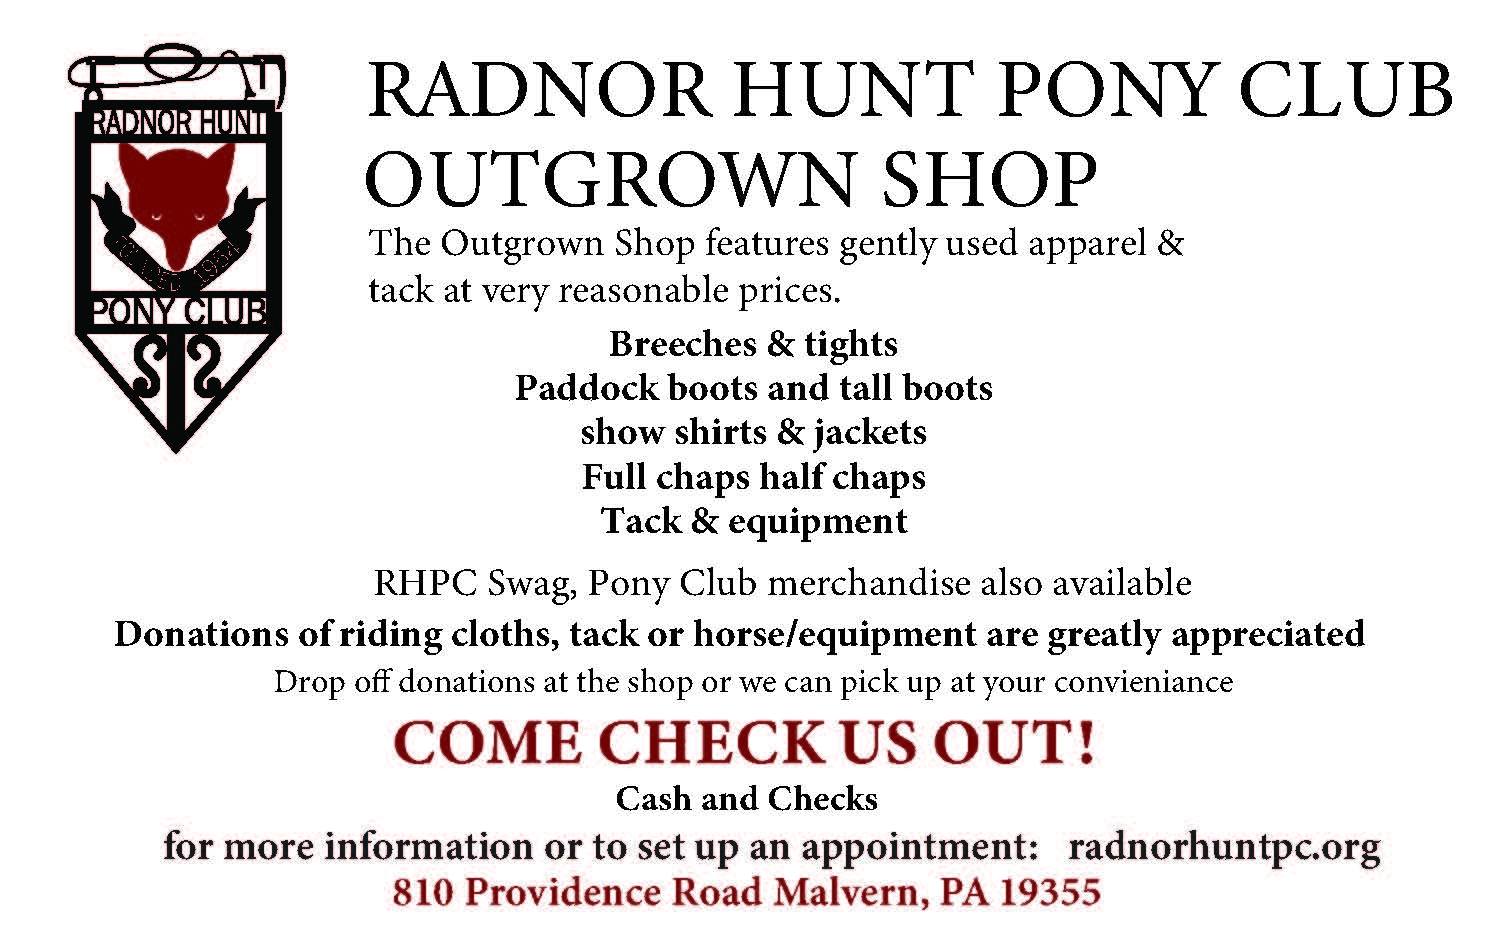 RHPC OUTGROWN SHOP AD 2018